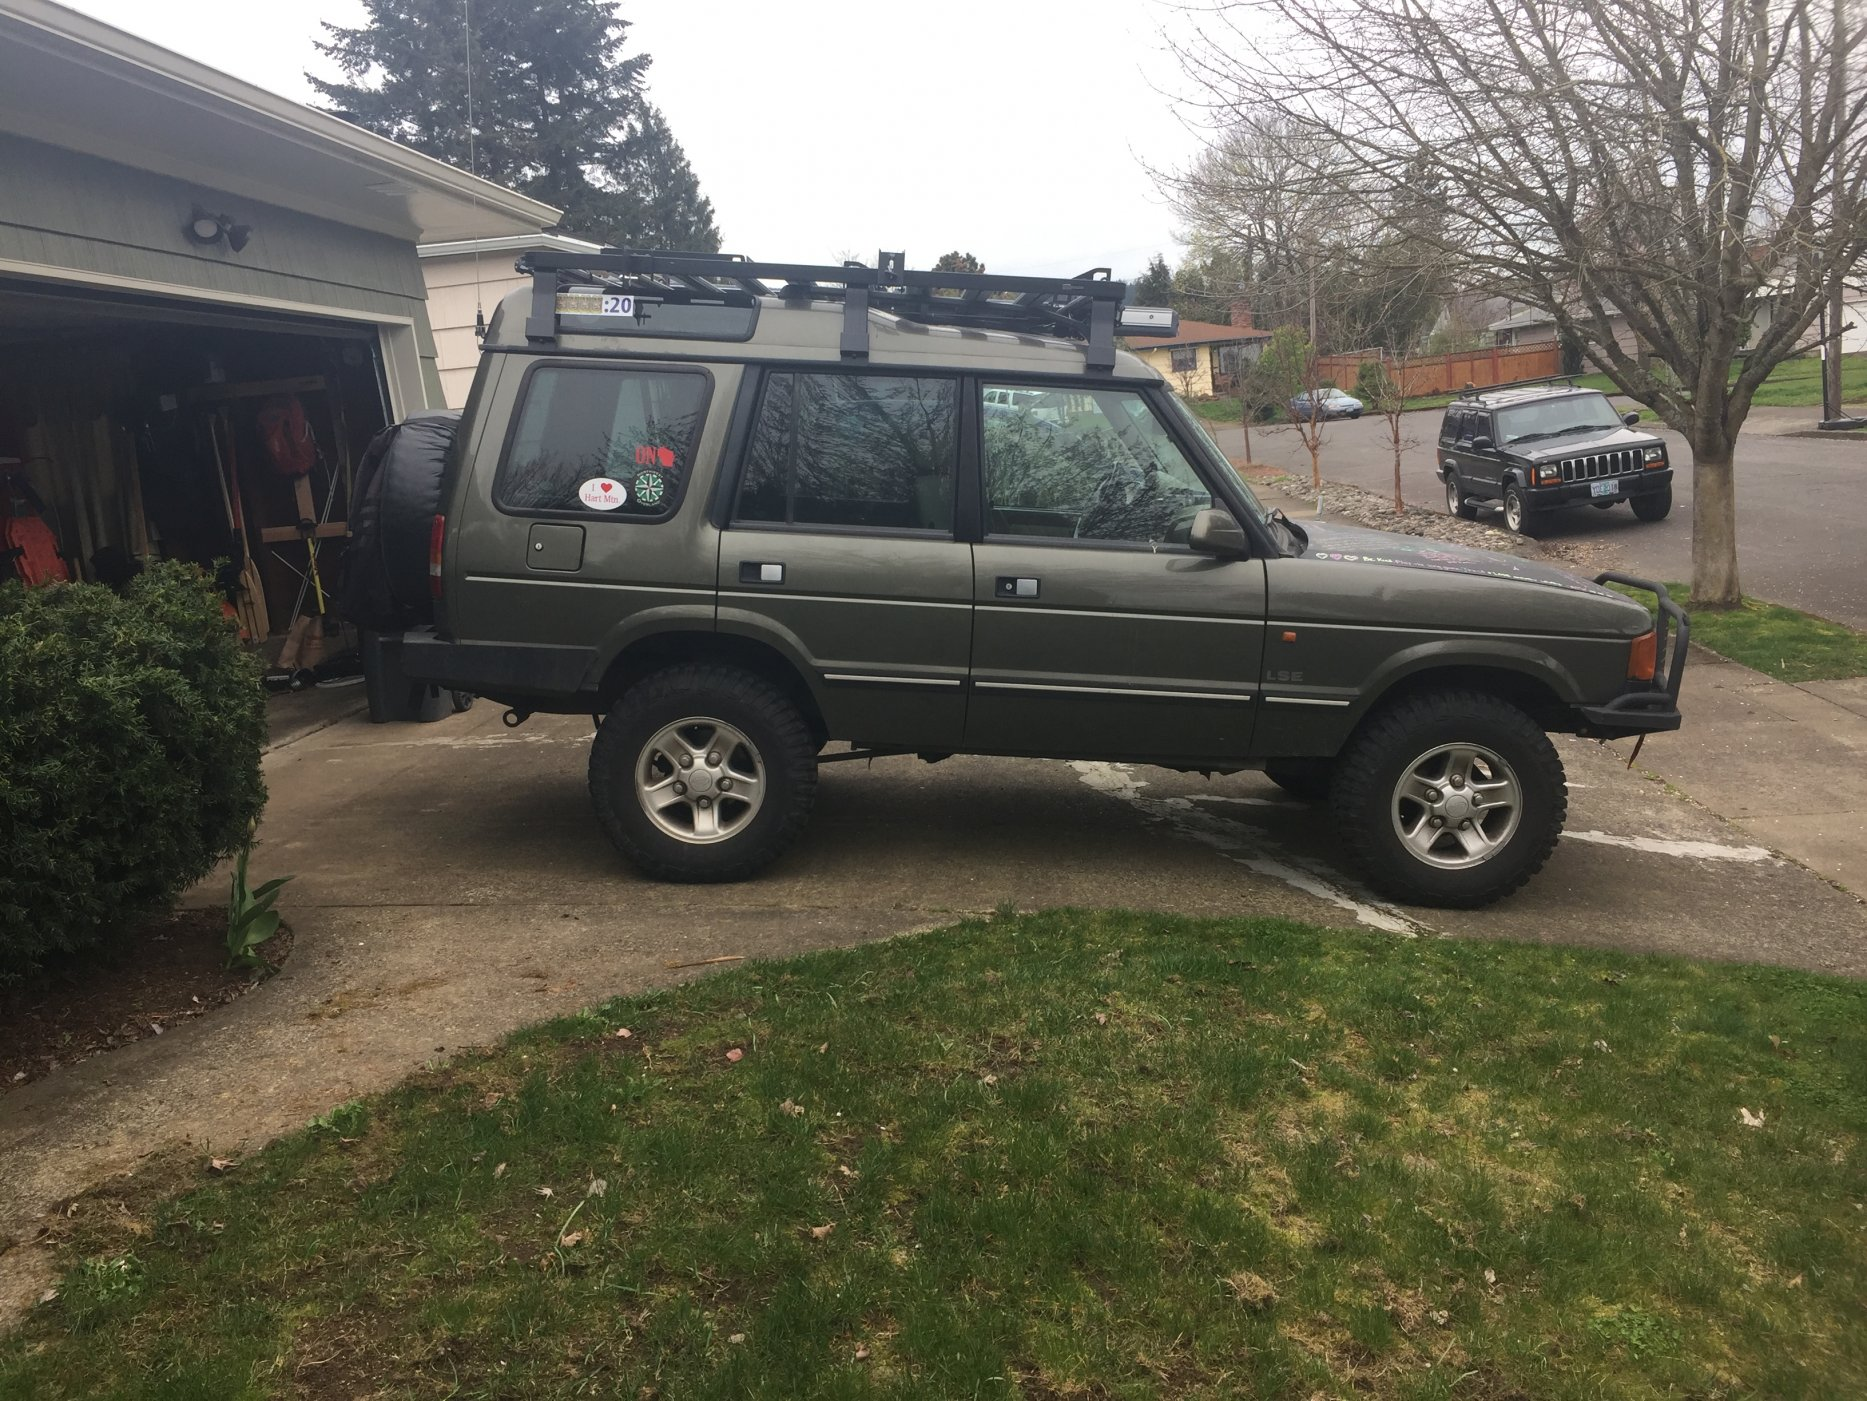 1998 Discovery 1 LSE Portland OR $8500 Expedition Portal